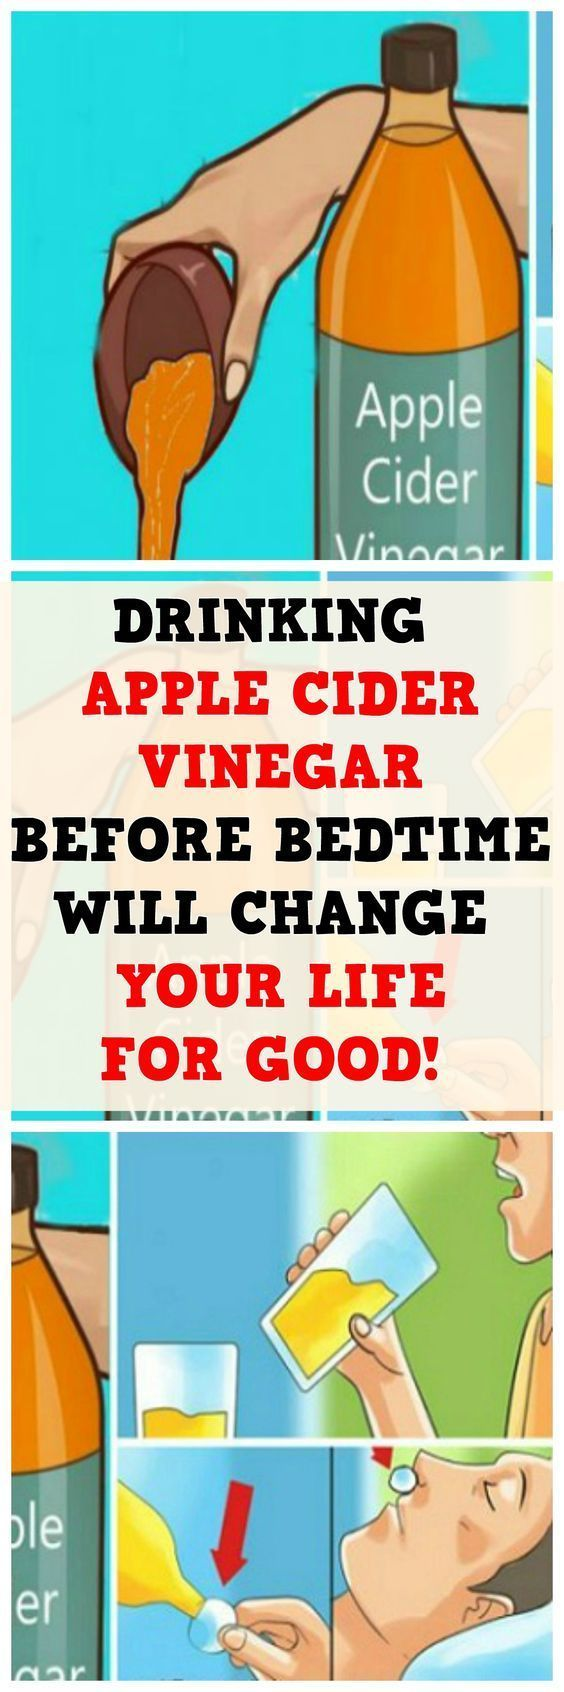 DRINKING APPLE CIDER VINEGAR BEFORE BEDTIME WILL CHANGE YOUR LIFE FOR GOOD!?><>